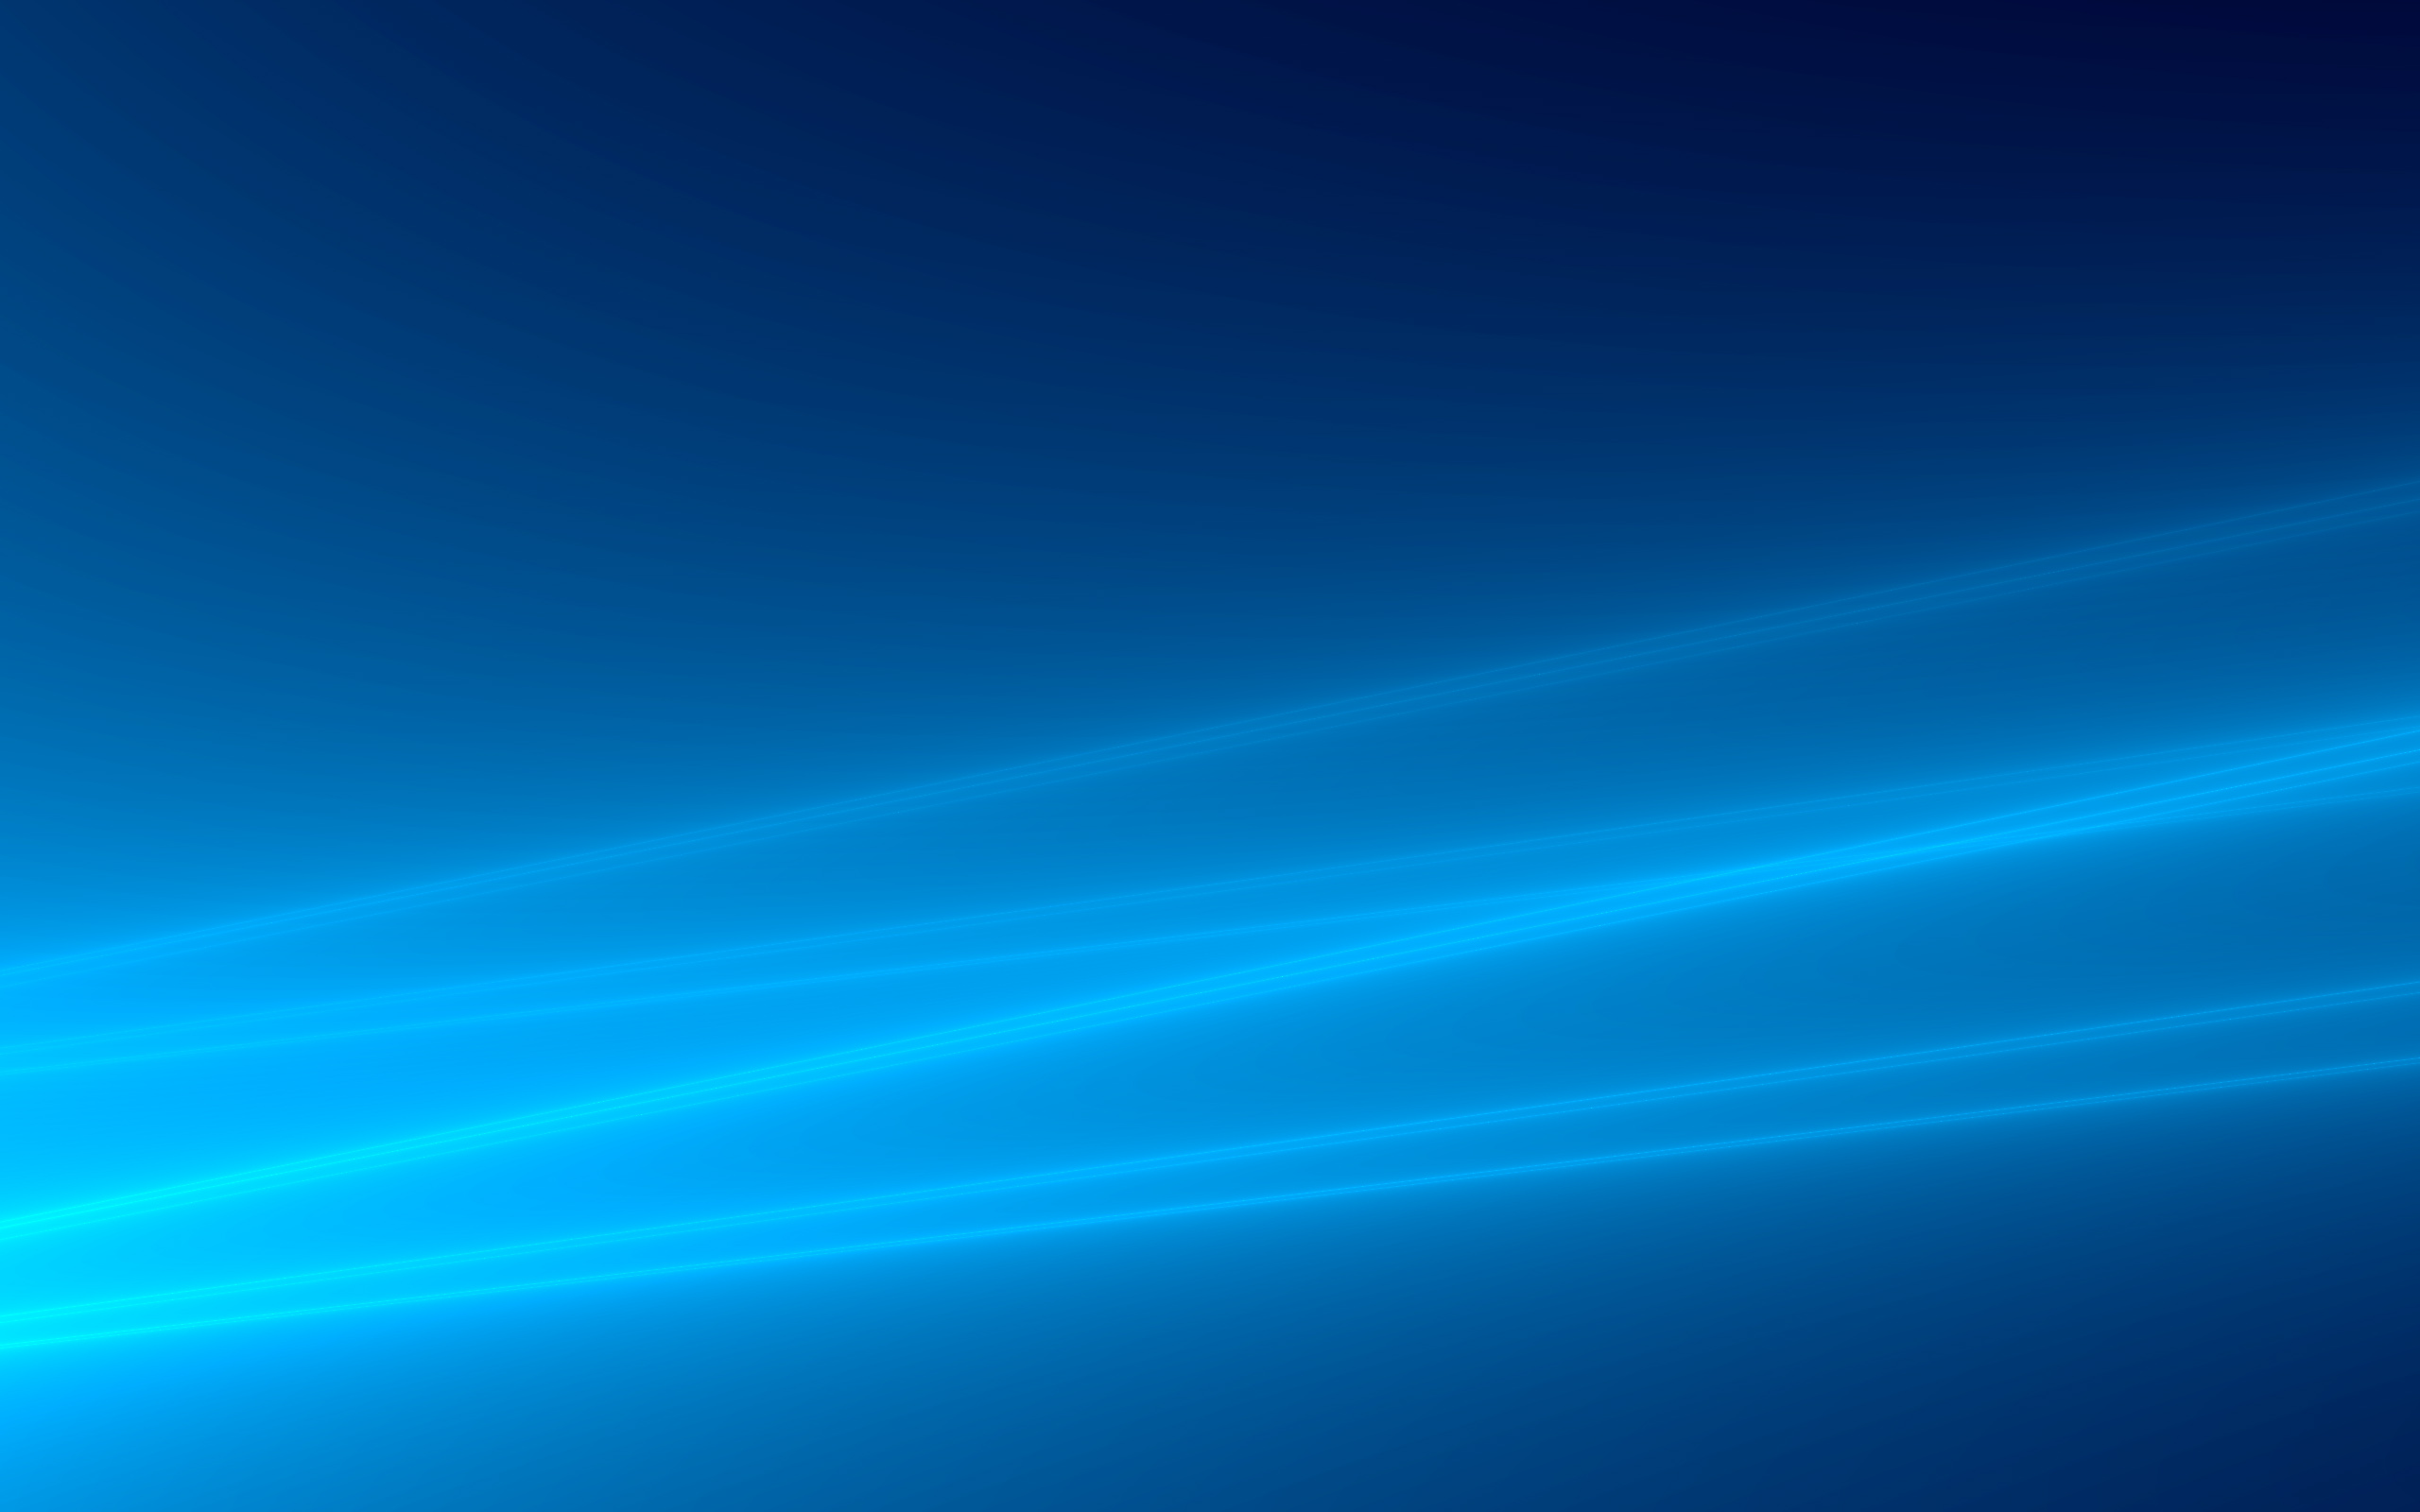 Blue Wallpaper Full HD Desktop